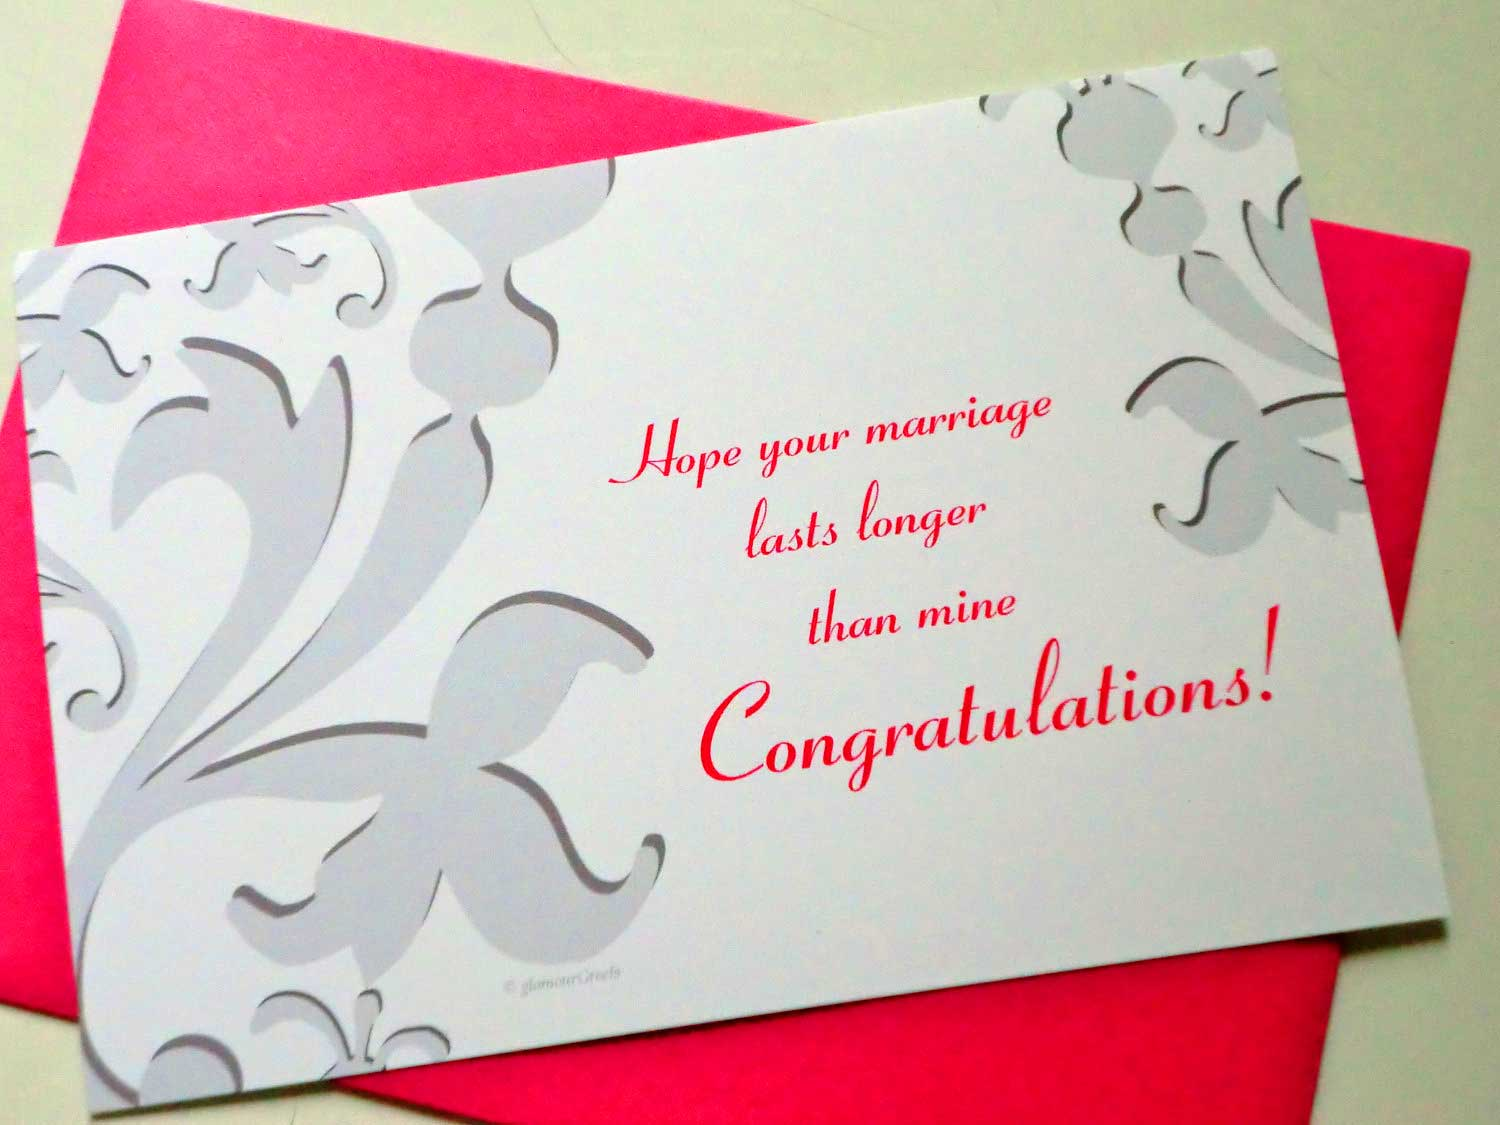 Wedding anniversary wishes for sister and brother in law images